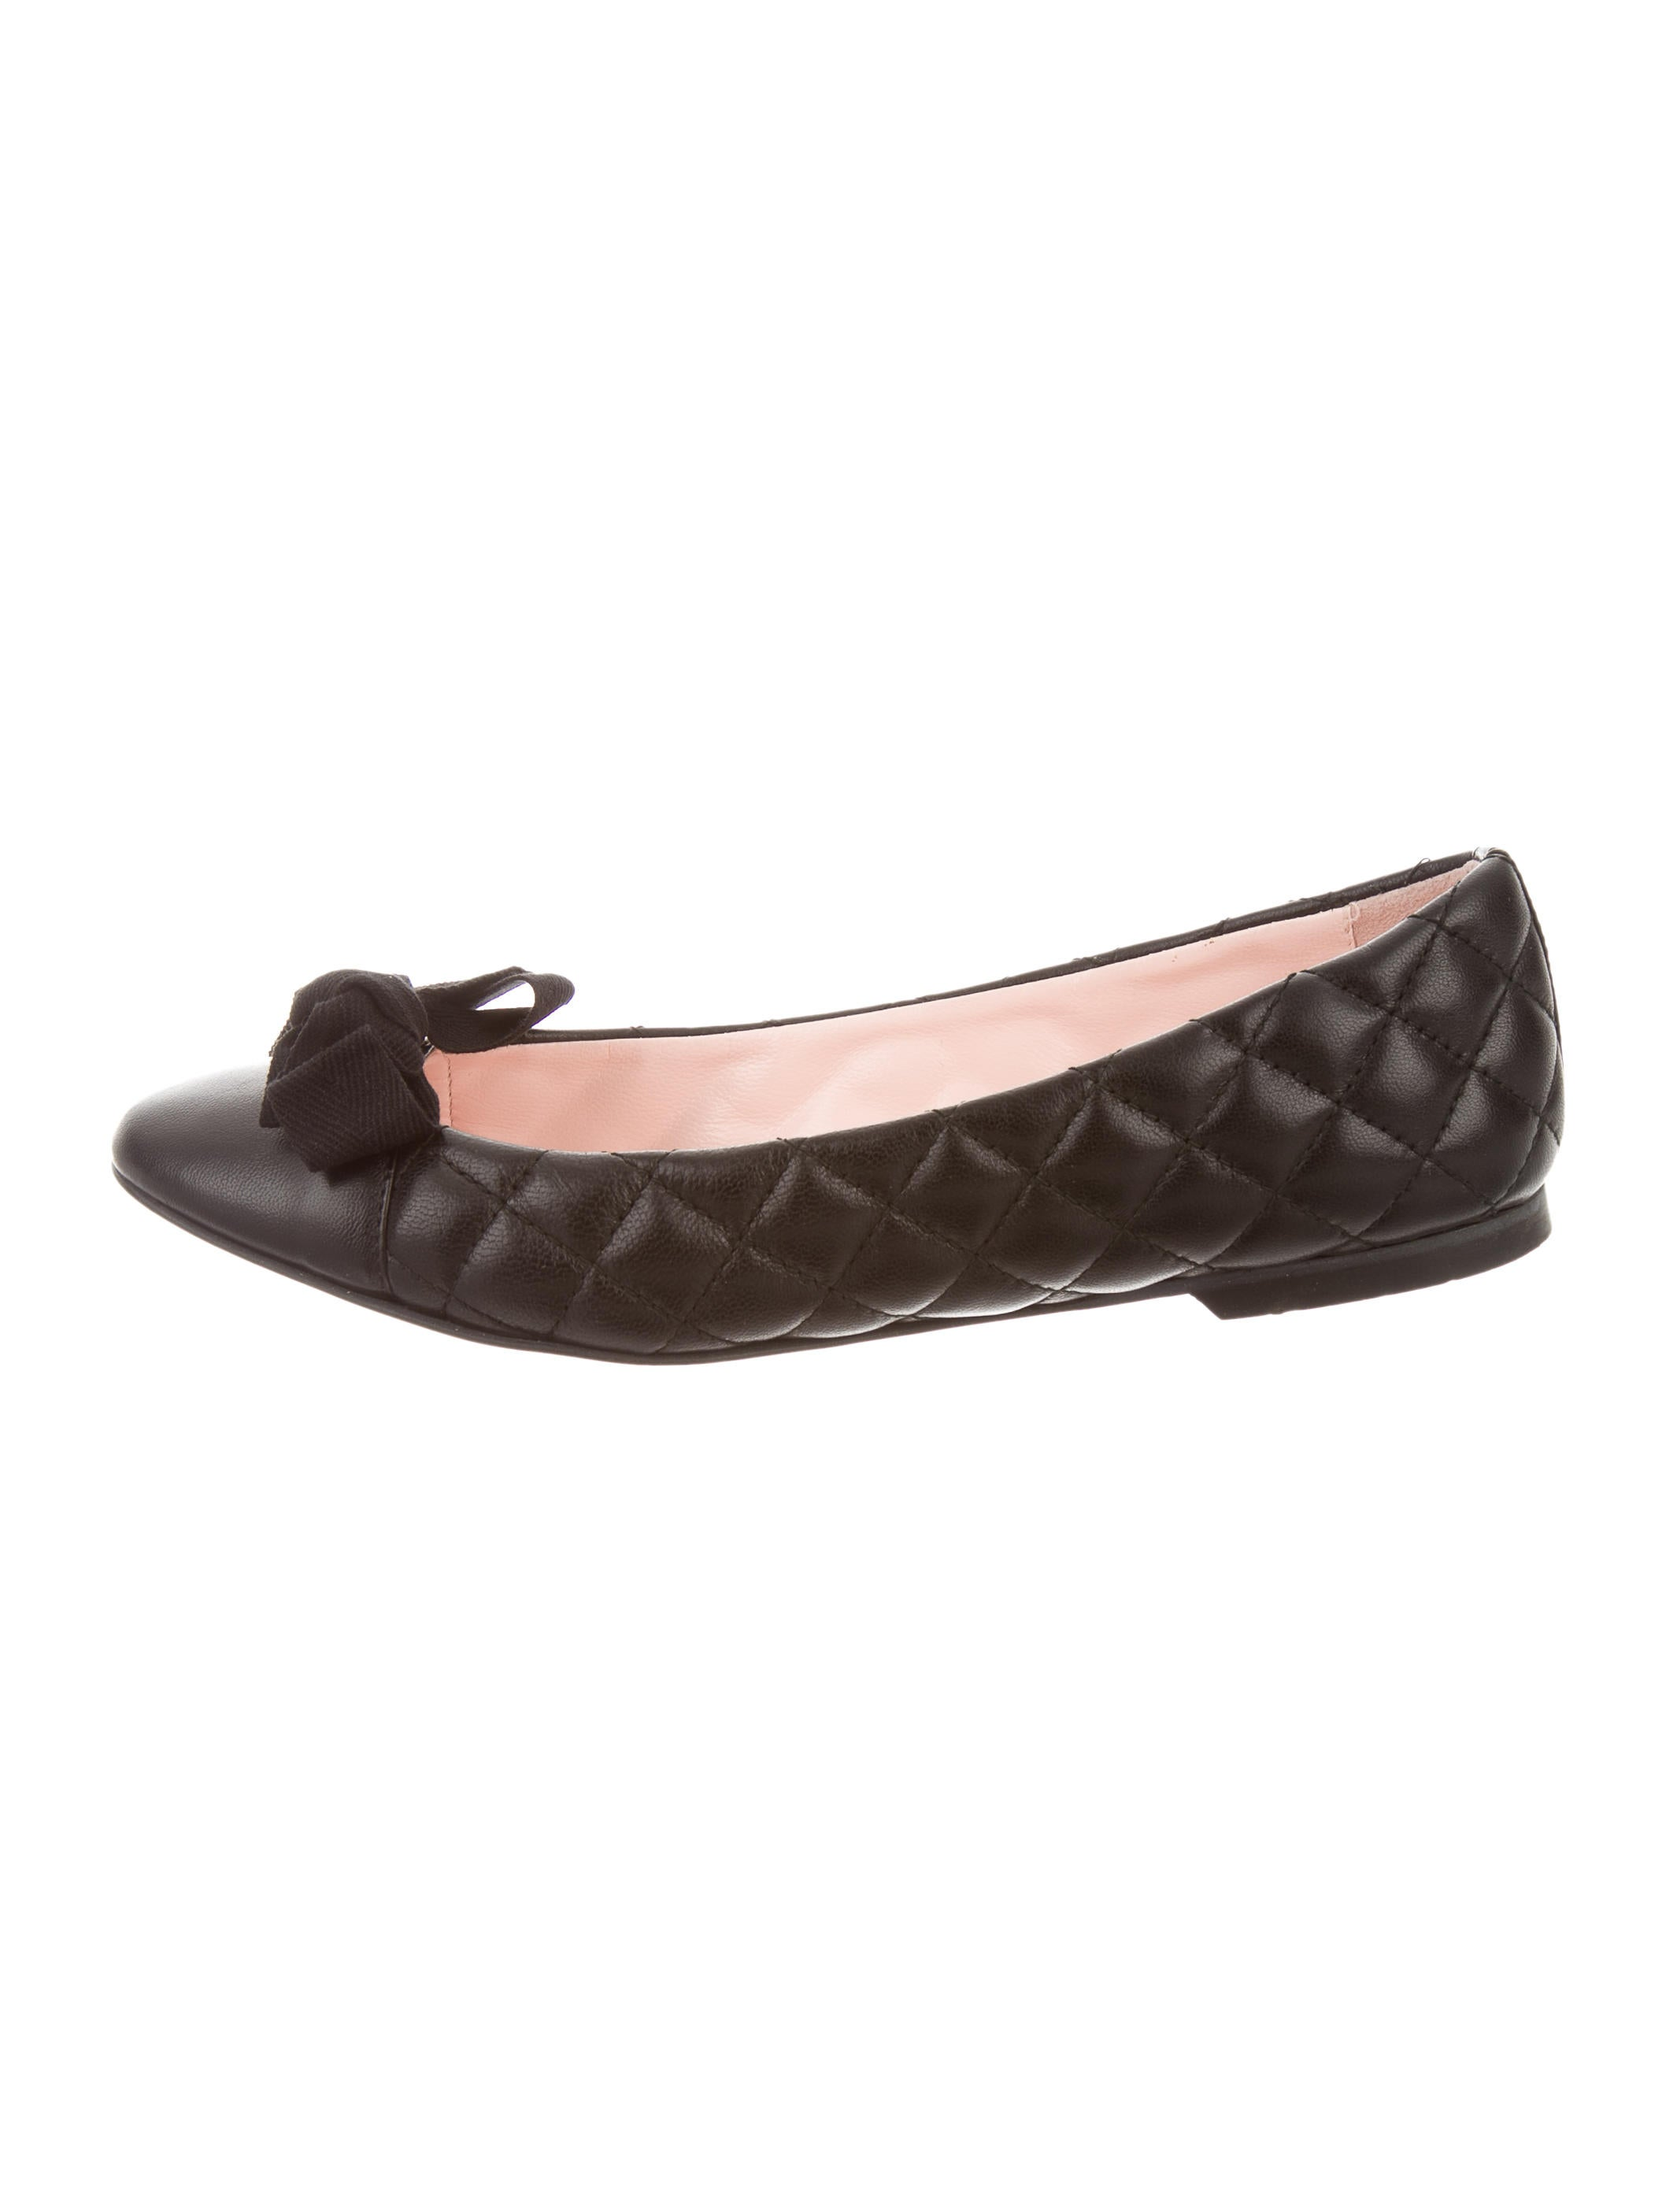 Red Valentino Leather Bow Flats - Shoes - WRE26119 | The ...